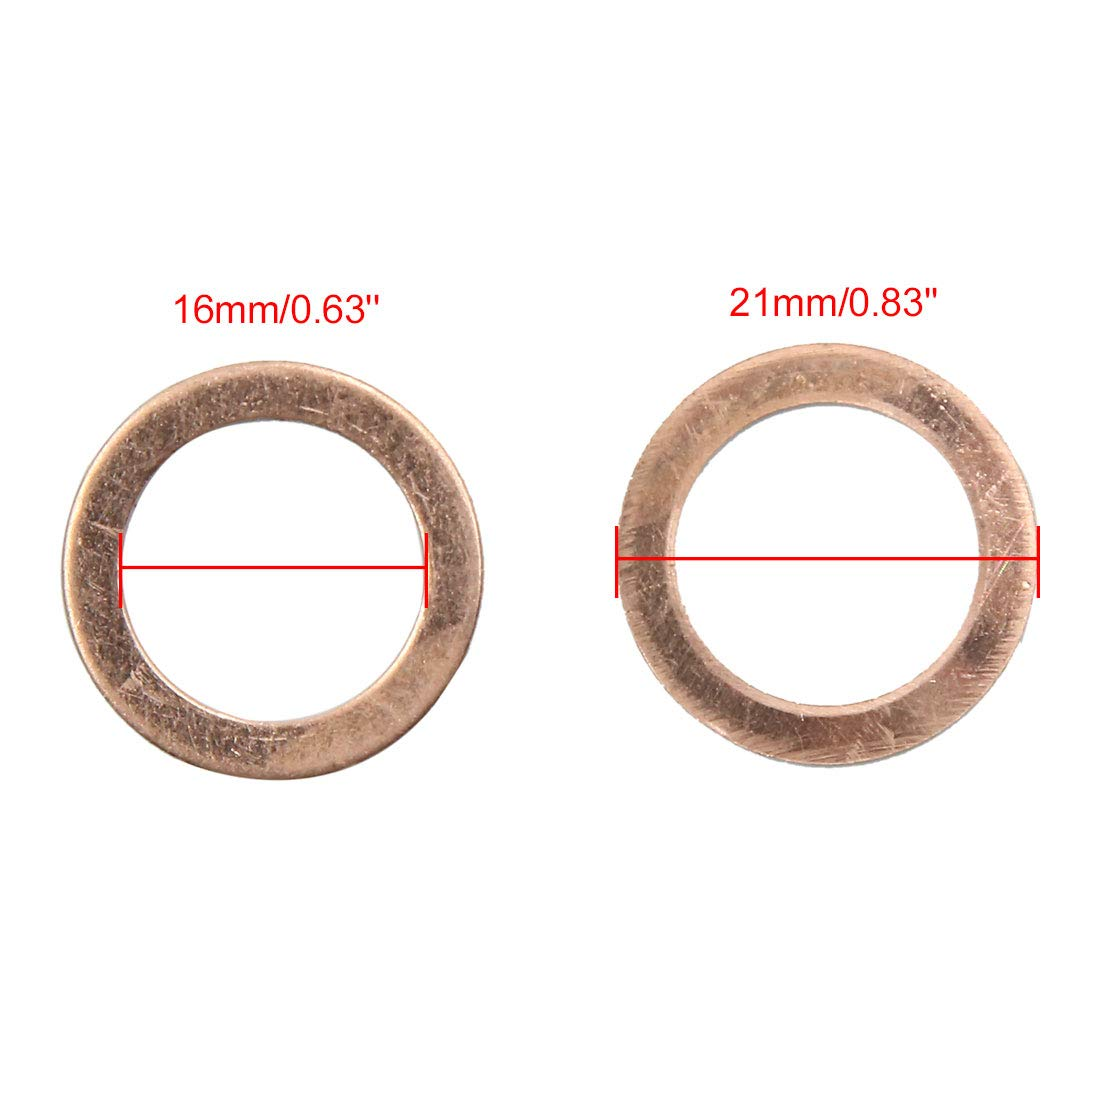 X AUTOHAUX 16mm Inner Dia Copper Crush Washers Car Flat Sealing Plate Gaskets Rings 40pcs by X AUTOHAUX (Image #2)